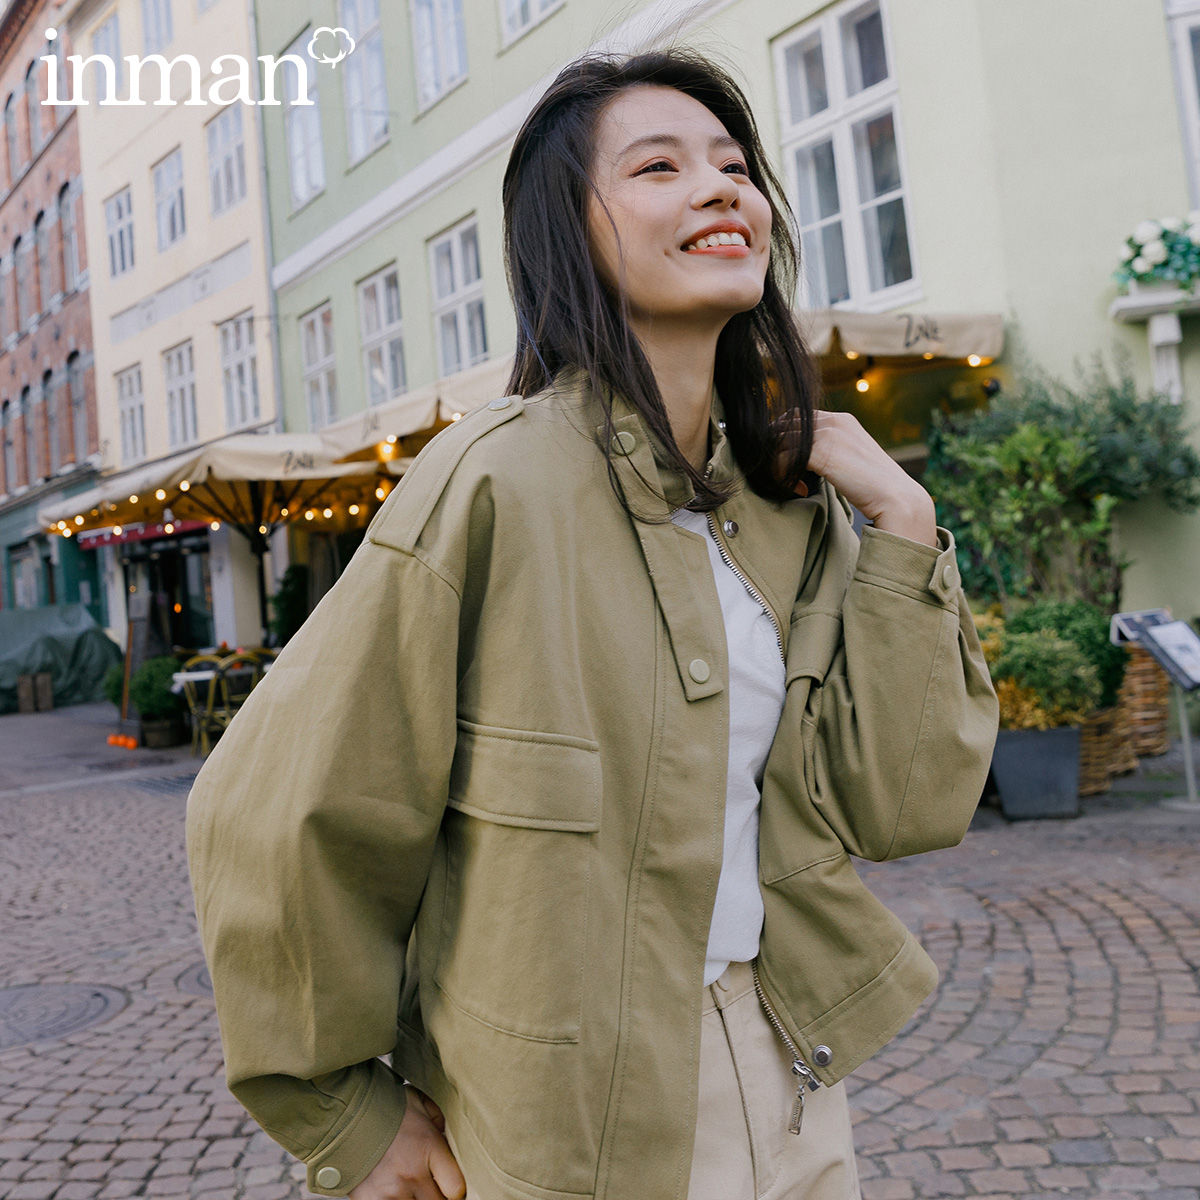 INMAN 2020 Spring New Arrival Literary Retro Overalls Style Stand Collar Loops Shoulder Large Pocket Short Women Coat